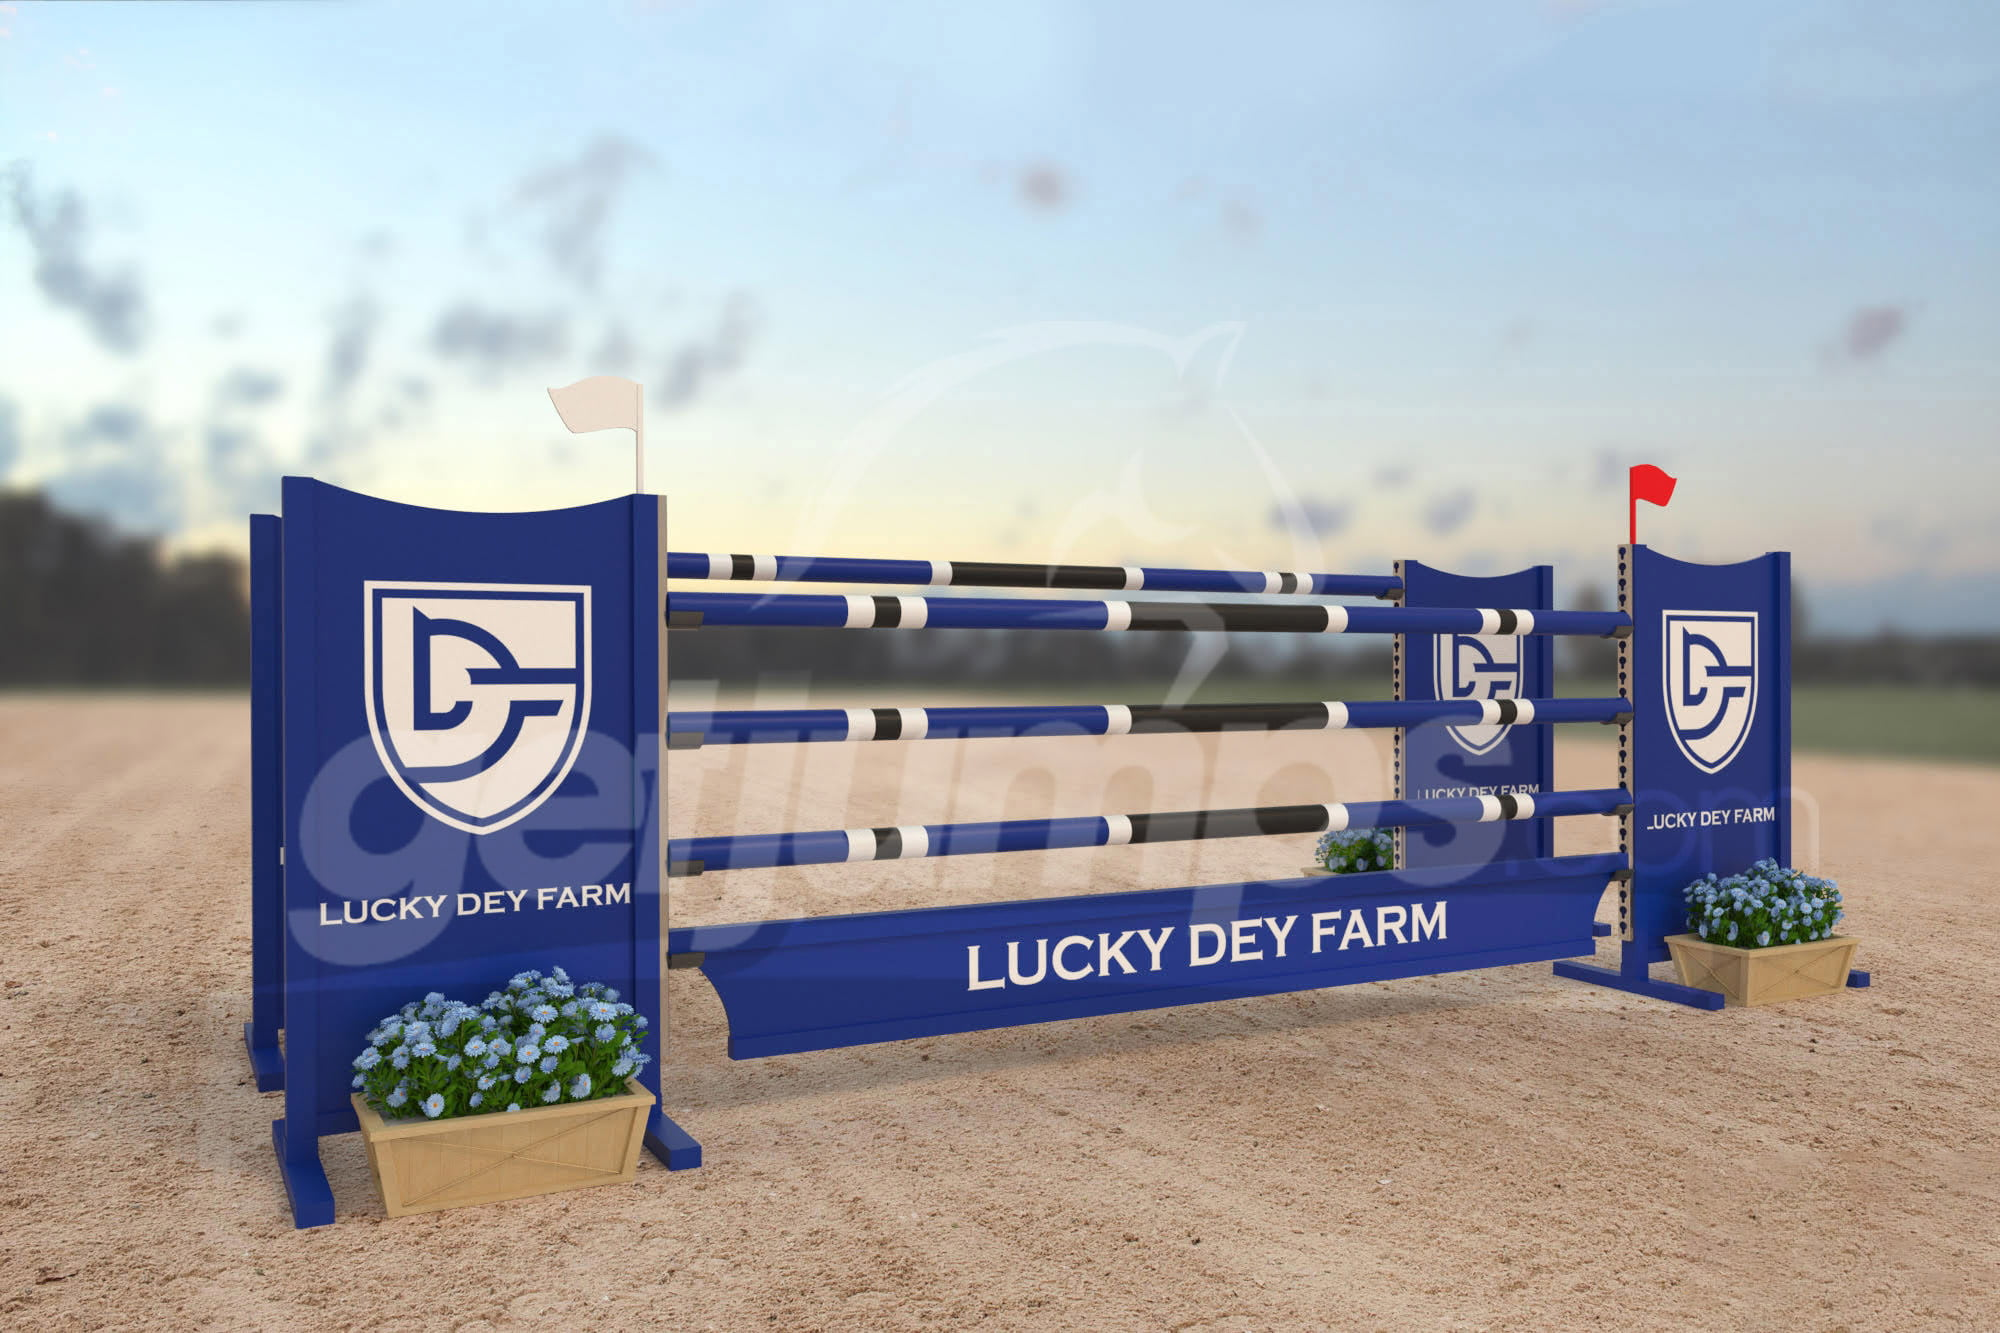 Lucky Dey Farm themed sponsor jump